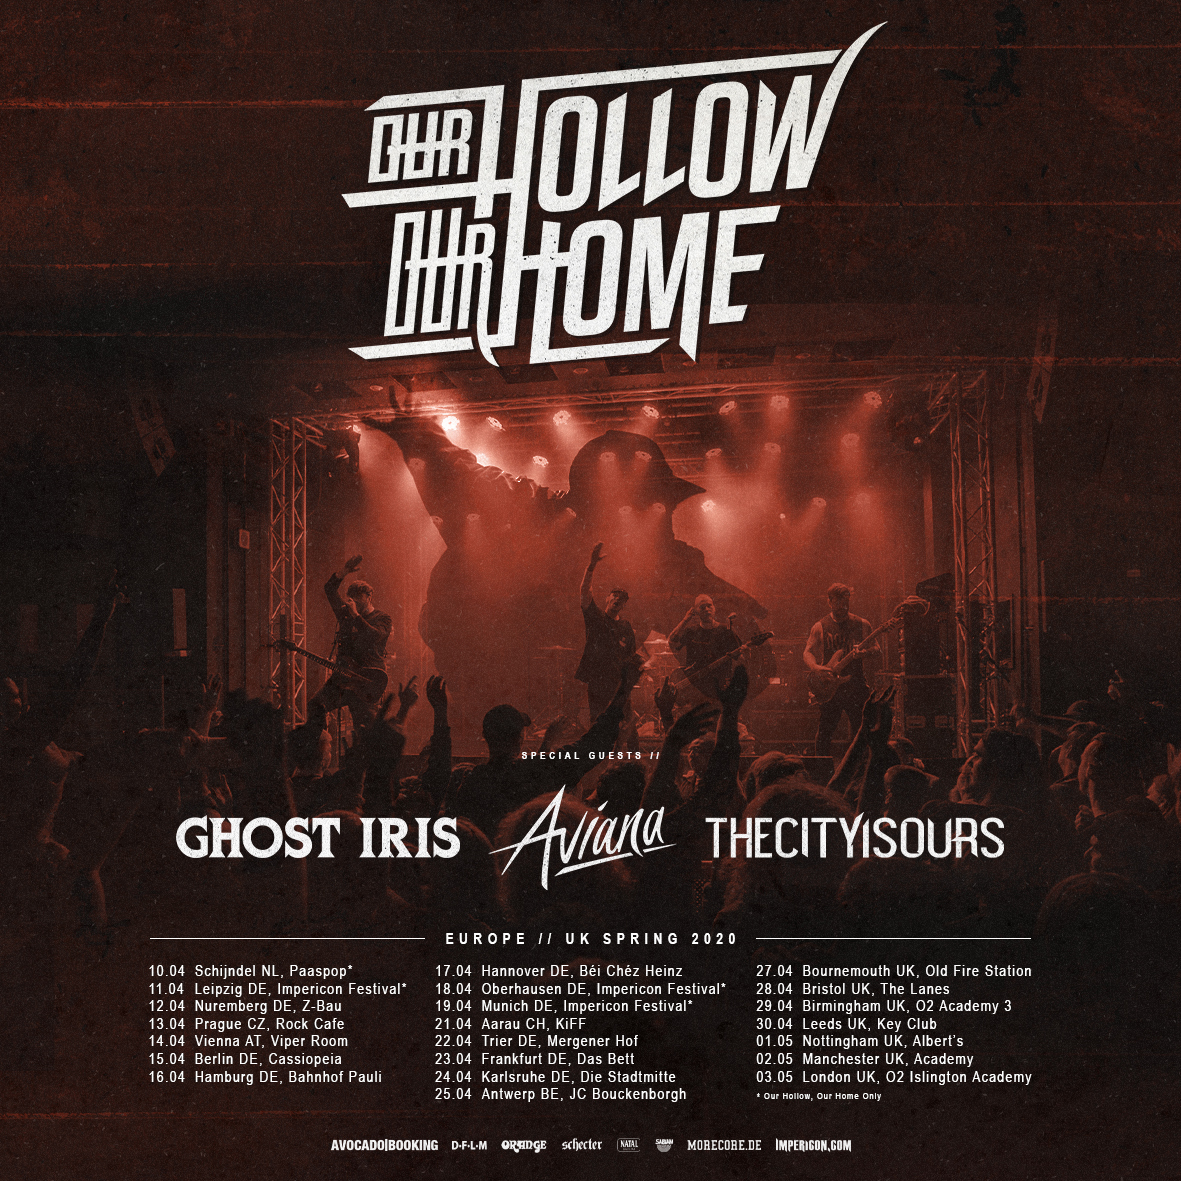 Our Hollow, Our Home Tour 2020